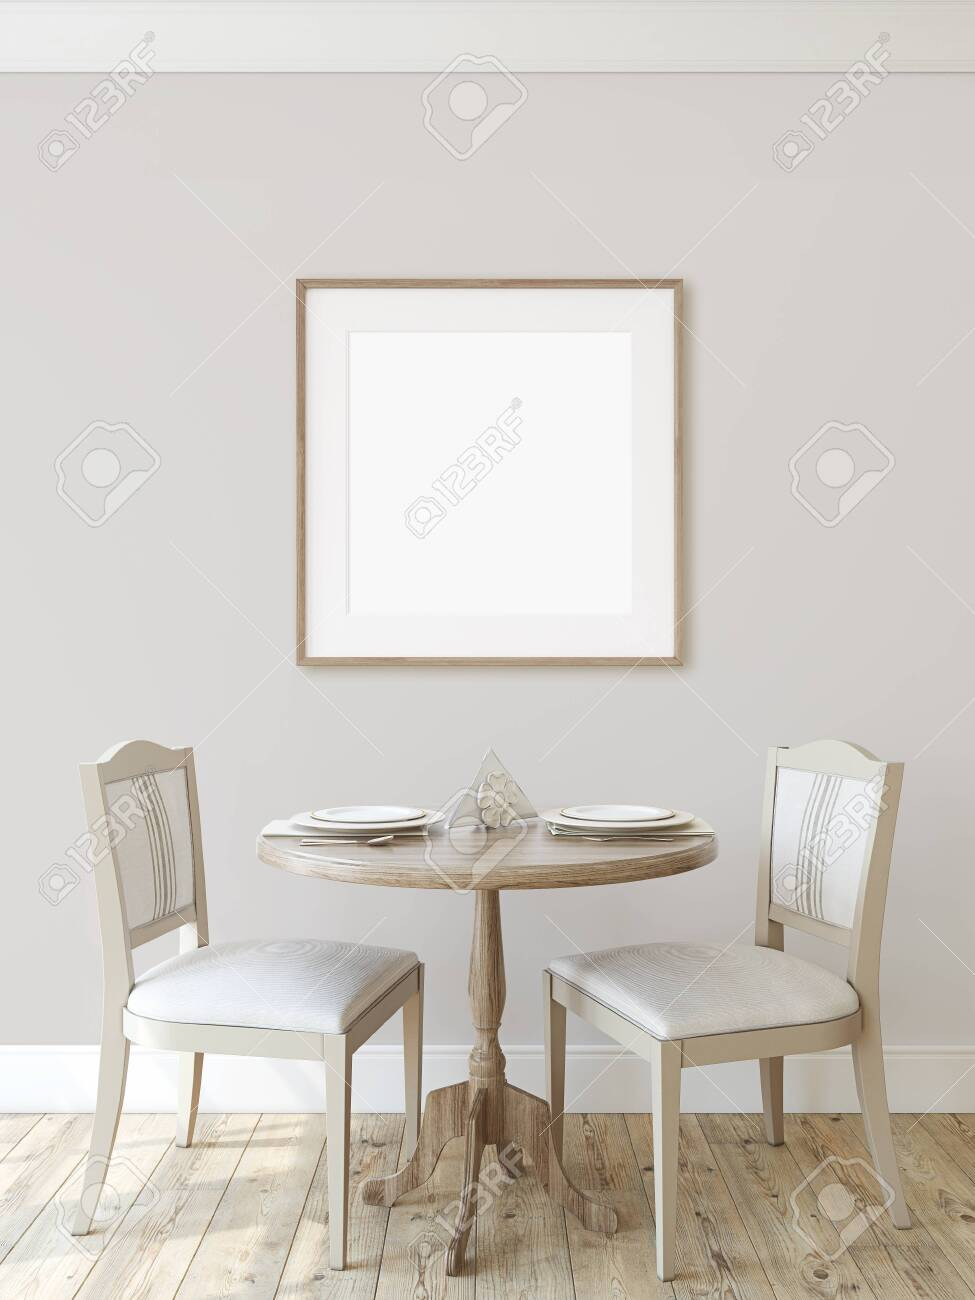 Modern dining-room. Interior mockup. Round table with two chairs near wall. Frame mockup. Square wooden frame on the wall. 3d render. - 128722498